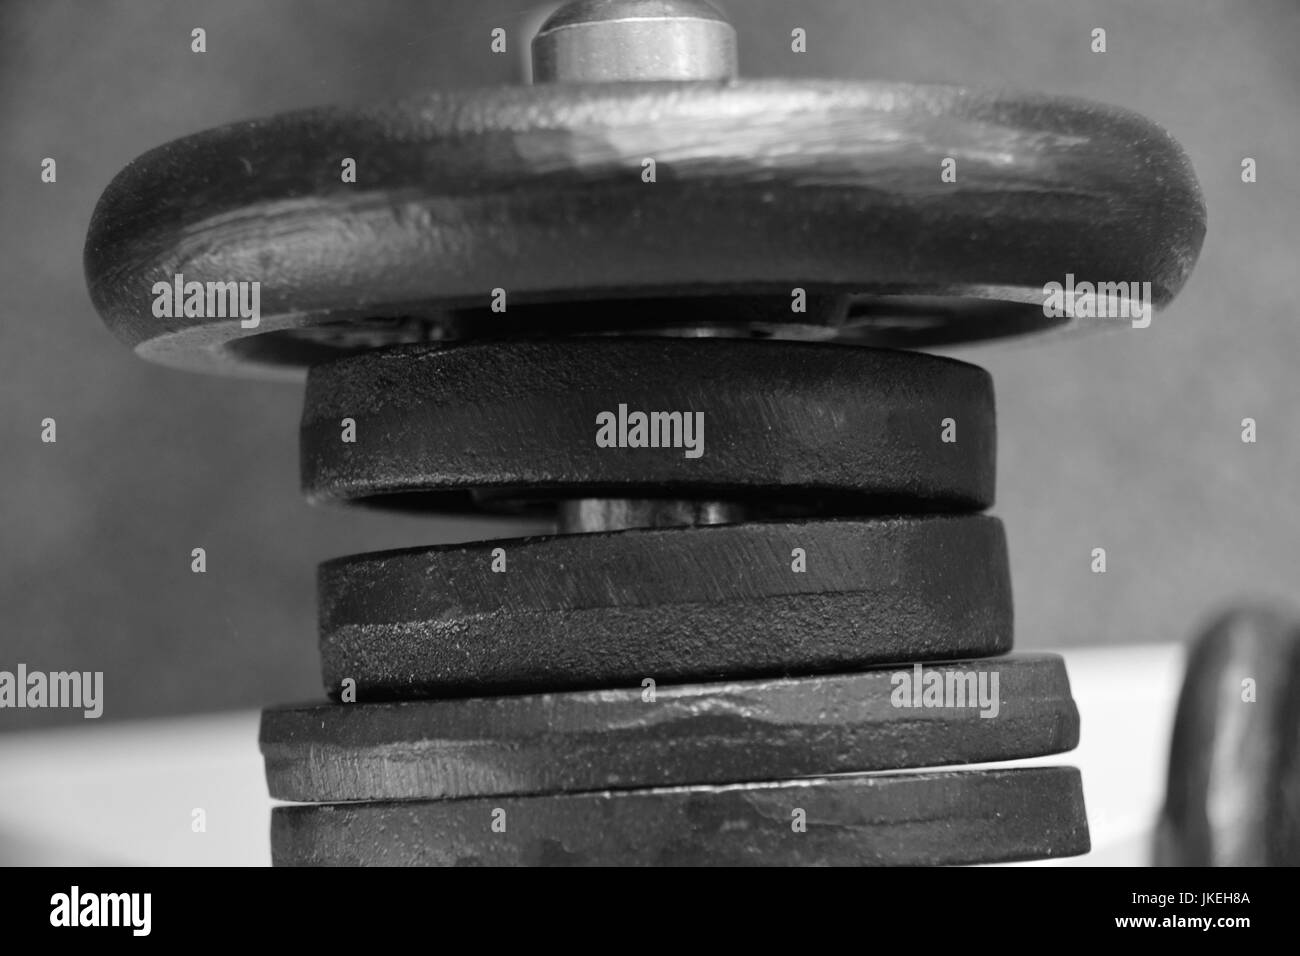 dumbbells in different sizes and weights, Bodybuilding weights for muscle building - Stock Image